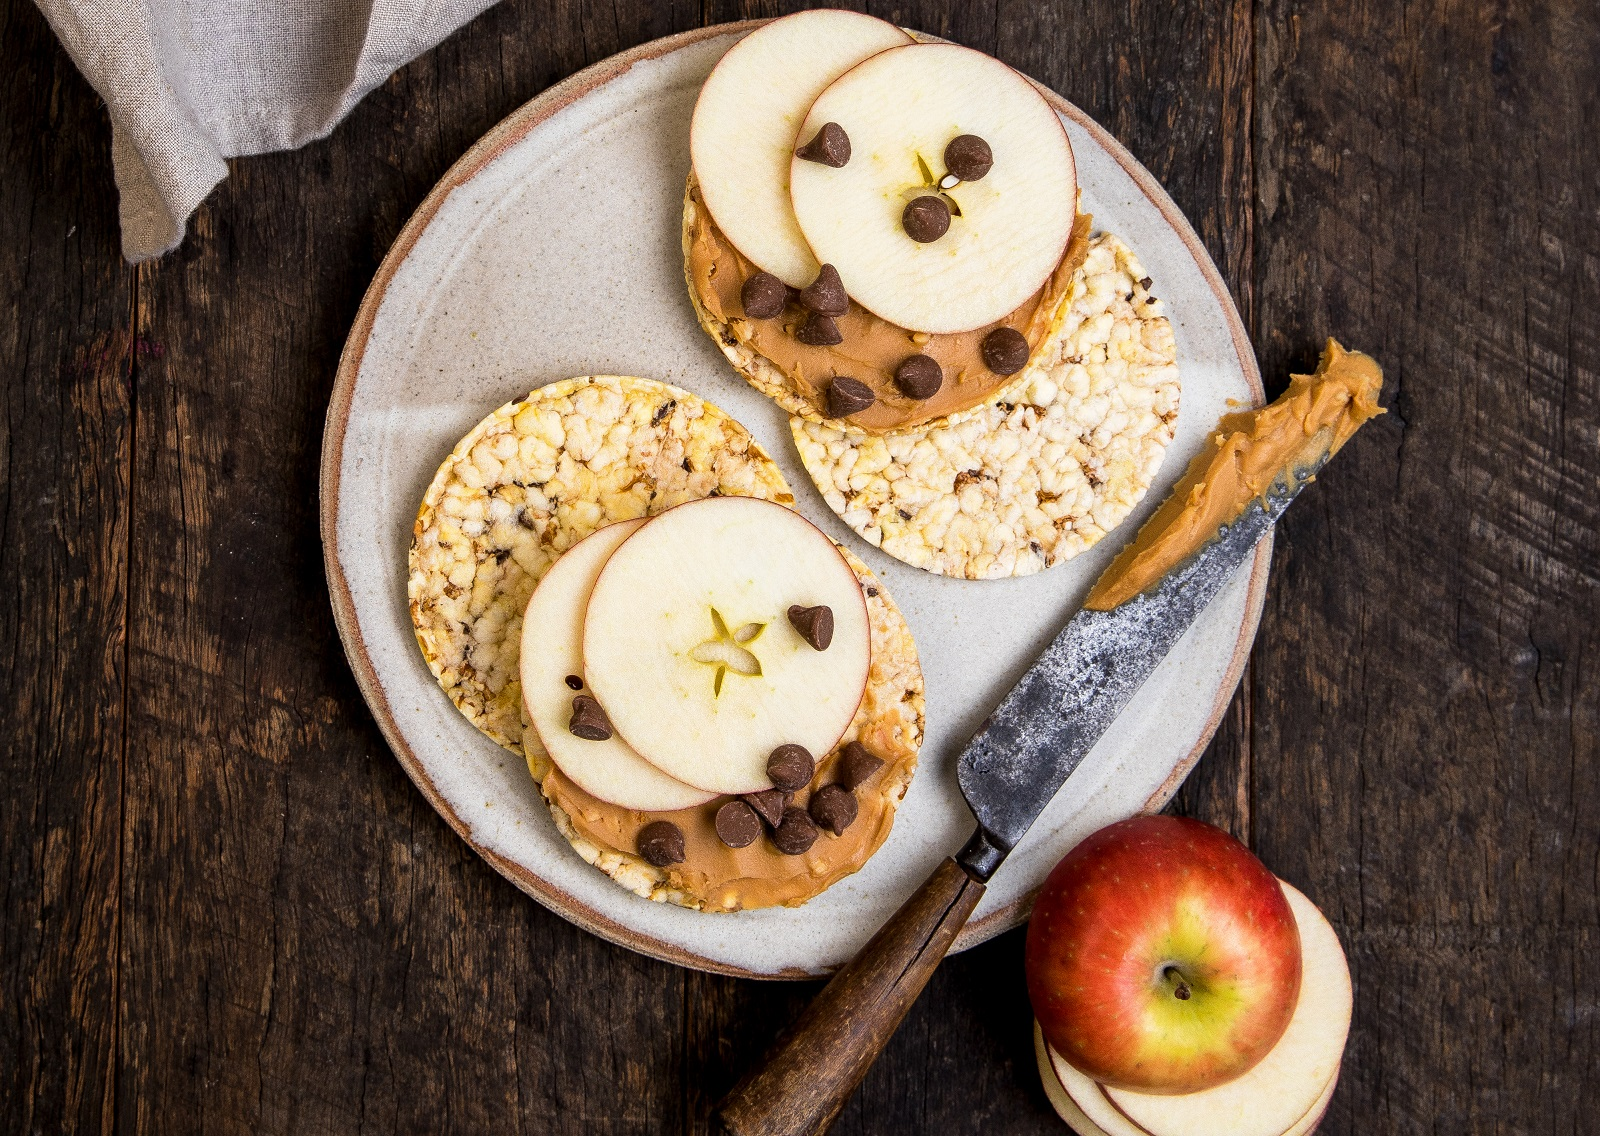 Peanut Butter, Apple & Choc Chips on CORN THINS slices